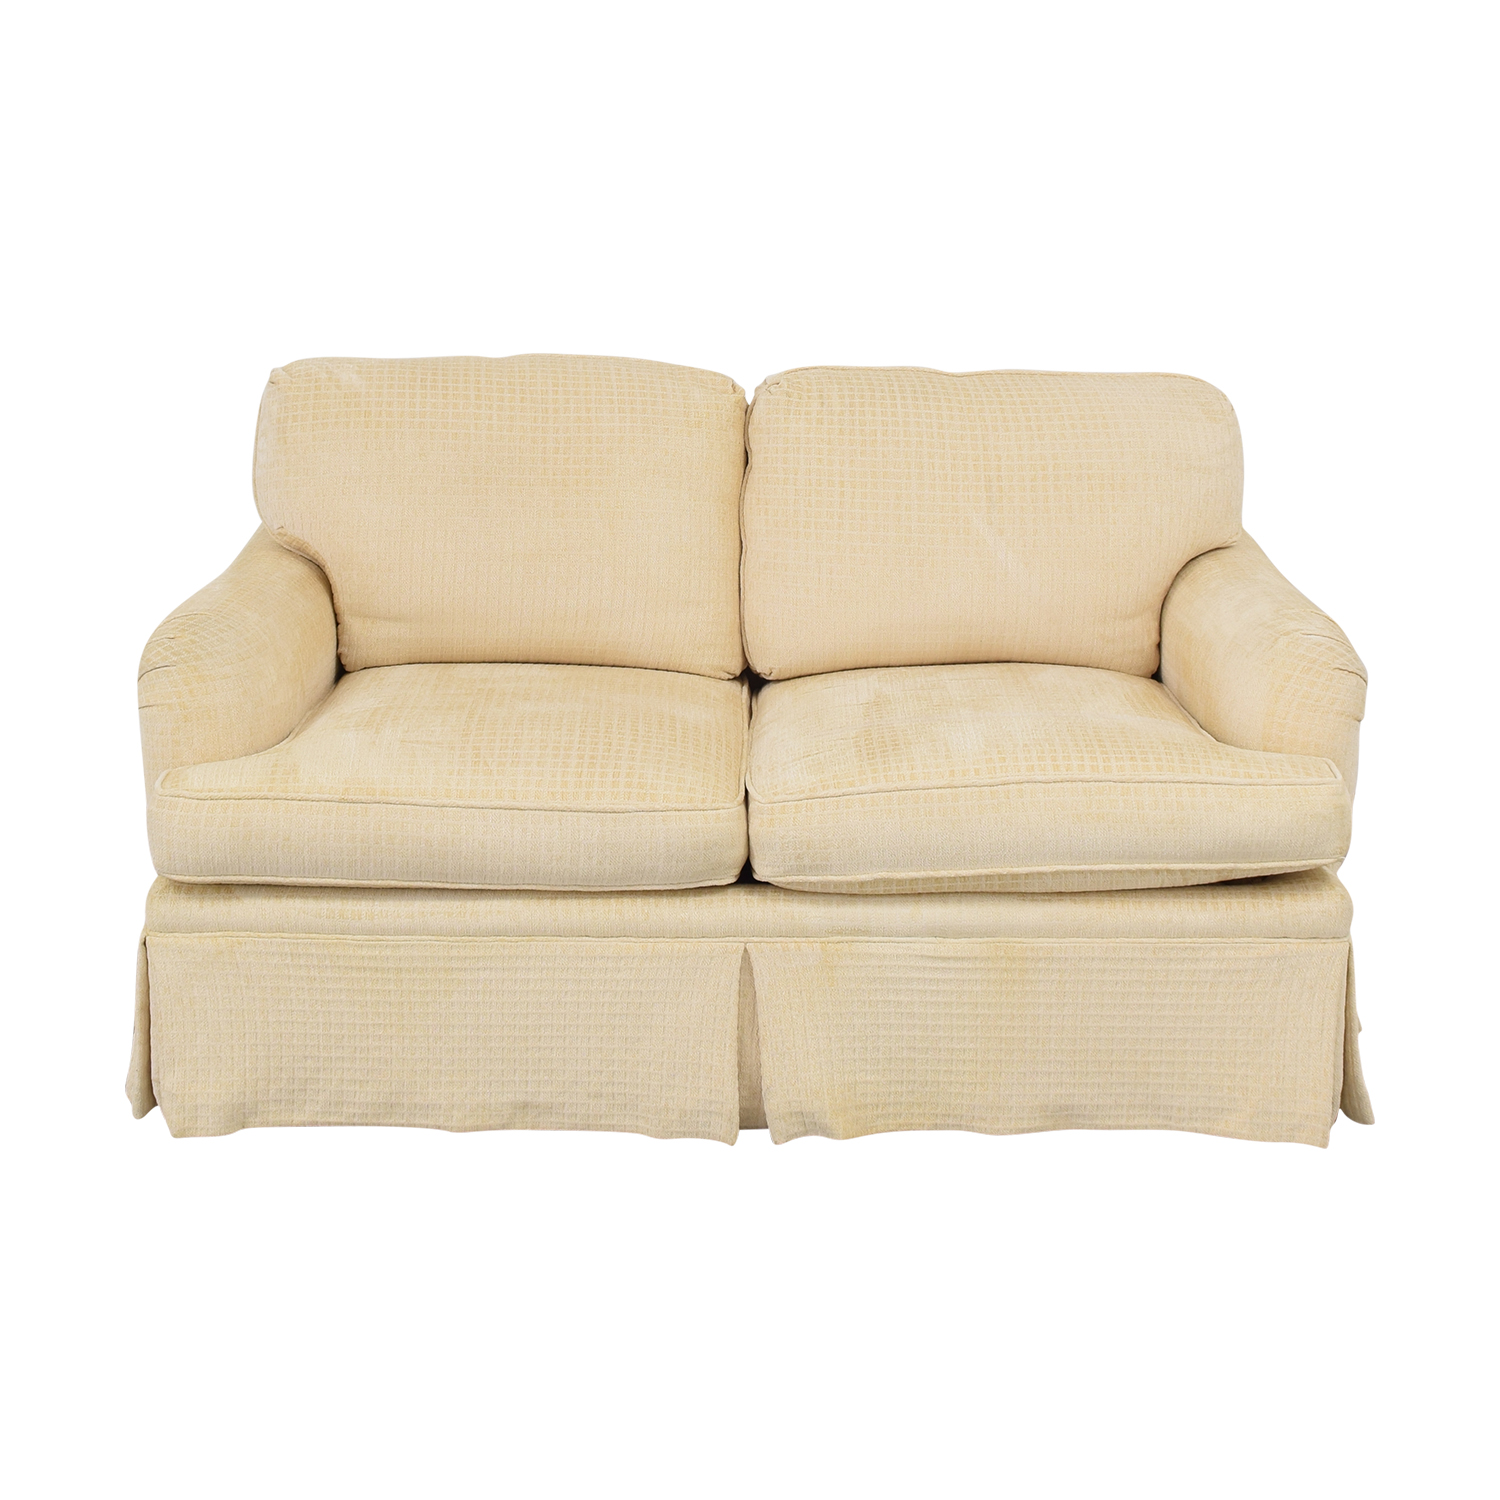 Mason-Art Mason-Art Upholstered Loveseat nyc